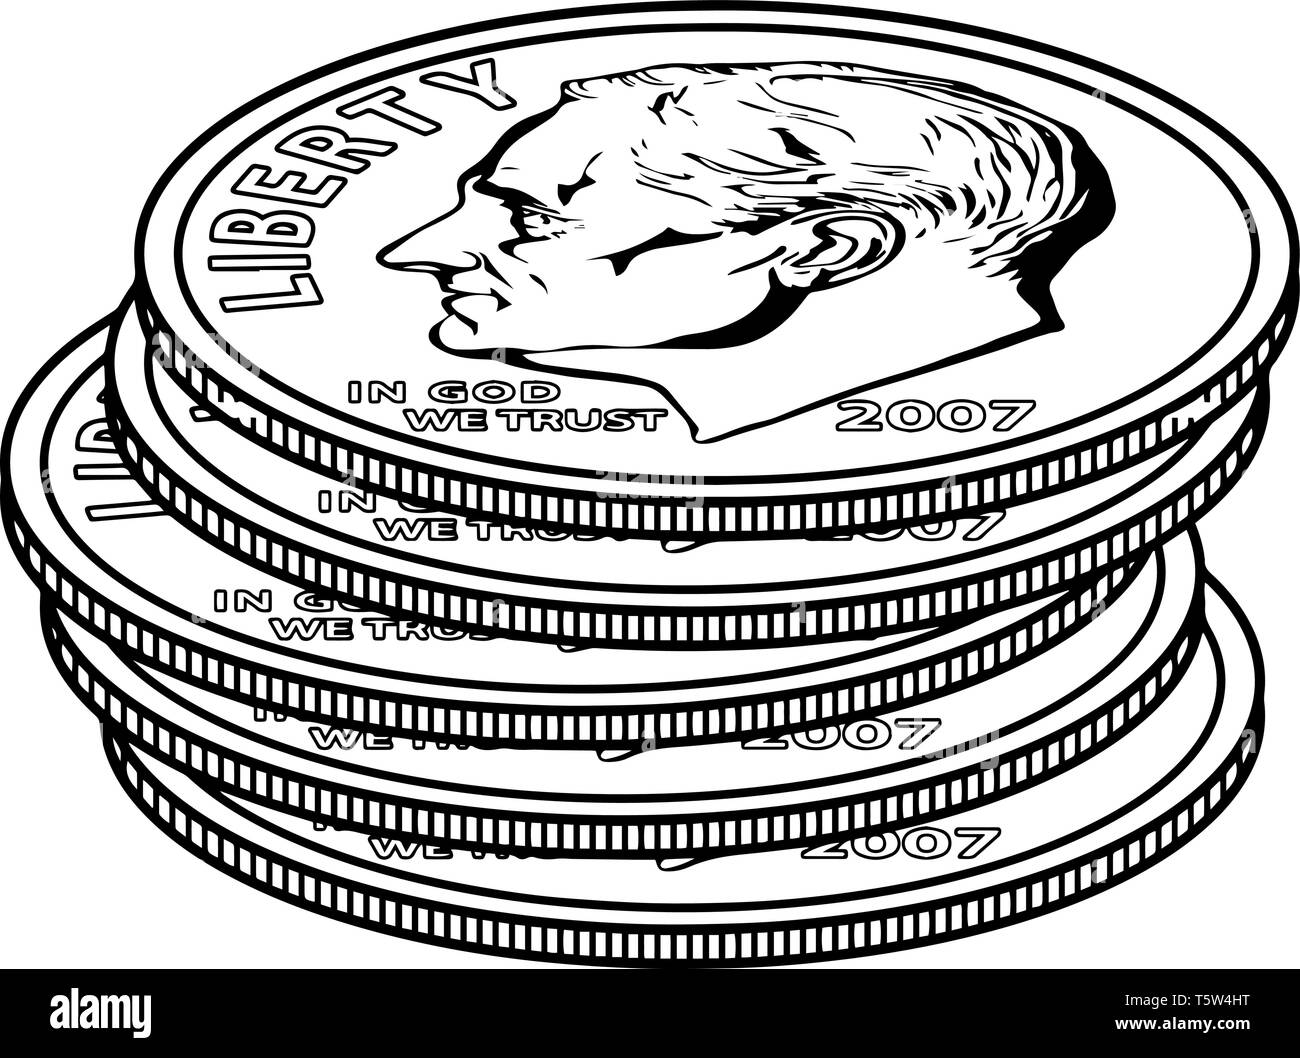 The Picture Shows The 5 Dimes Coin Coin Has Fine Lines